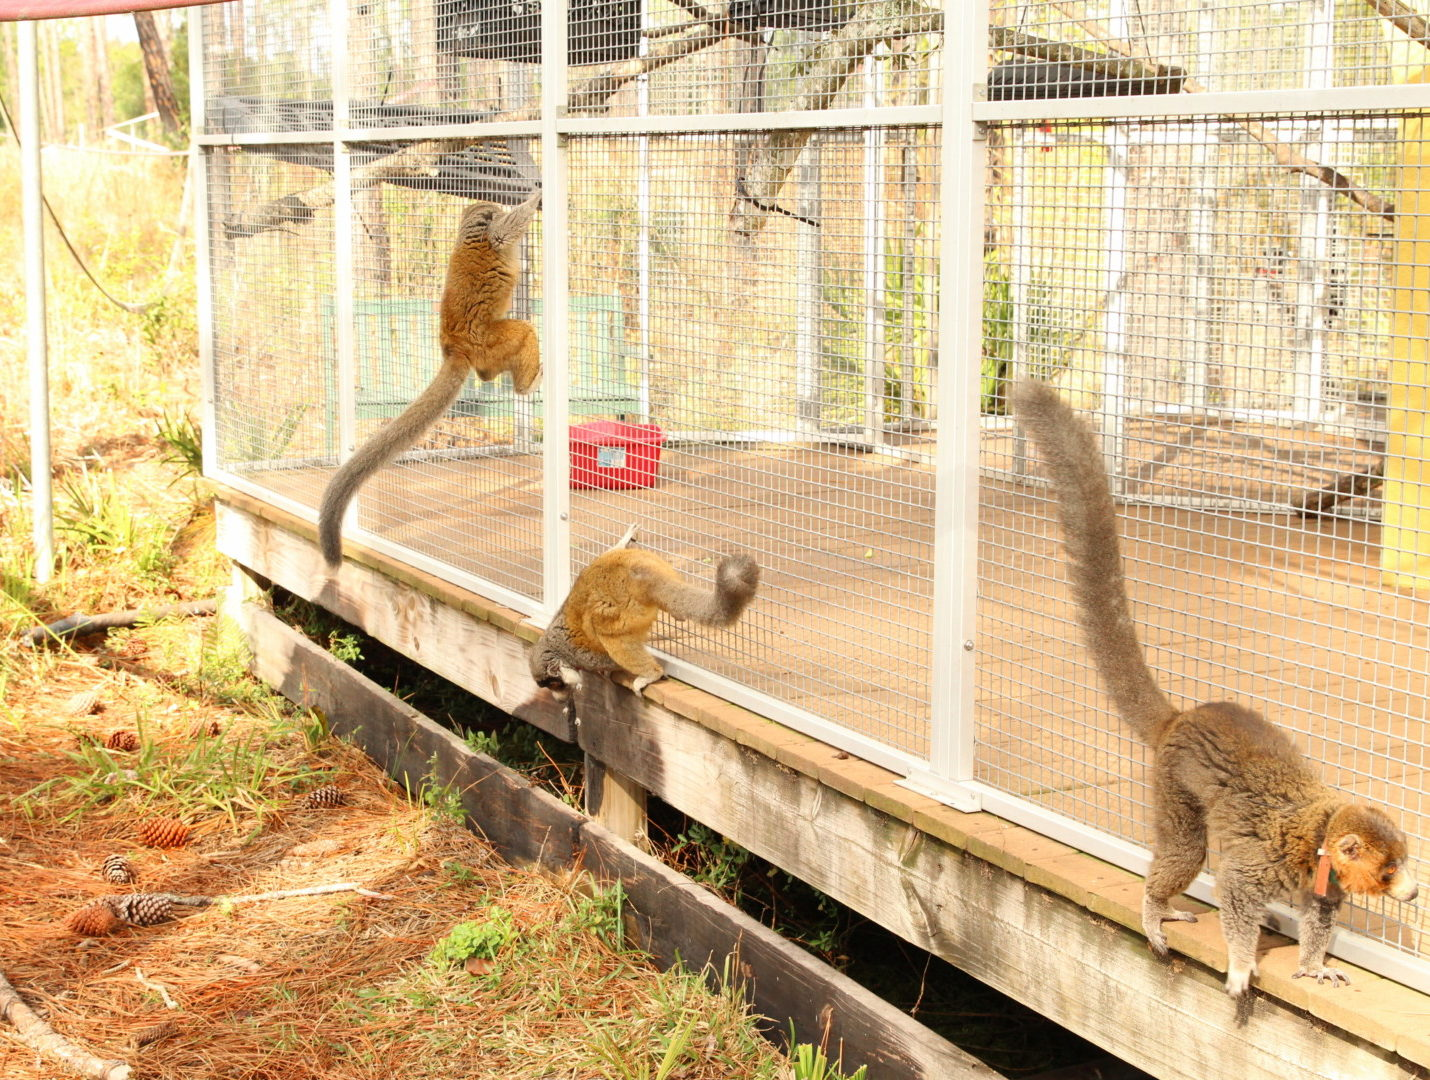 Three mongoose lemurs climbing on outsides of shelter in forest habitat